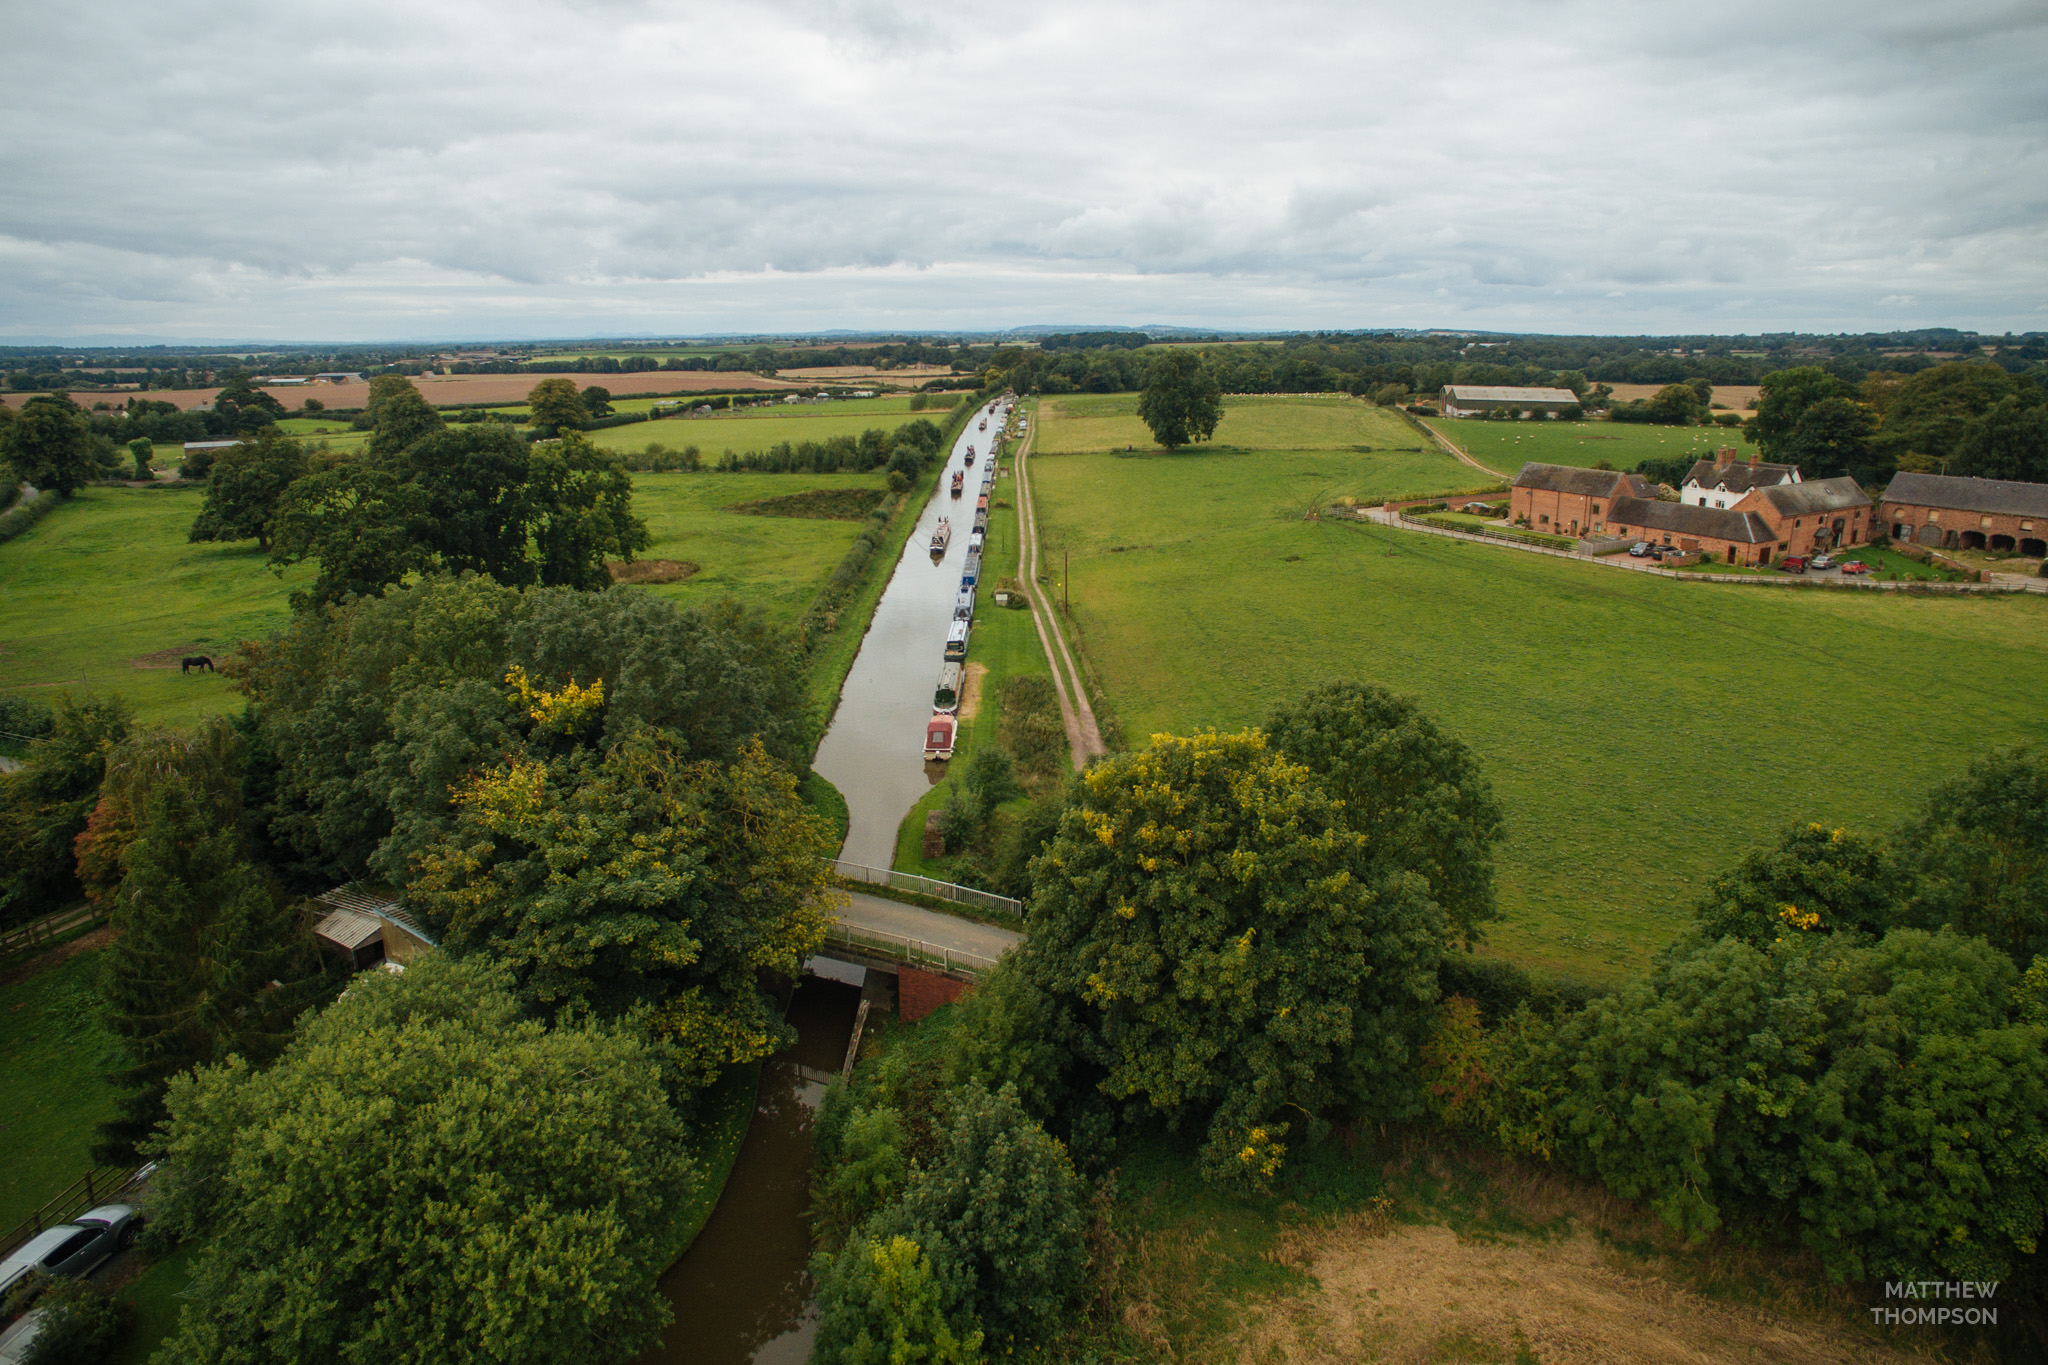 150920-Parrott-Canalboats-Aerial-121-W.jpg